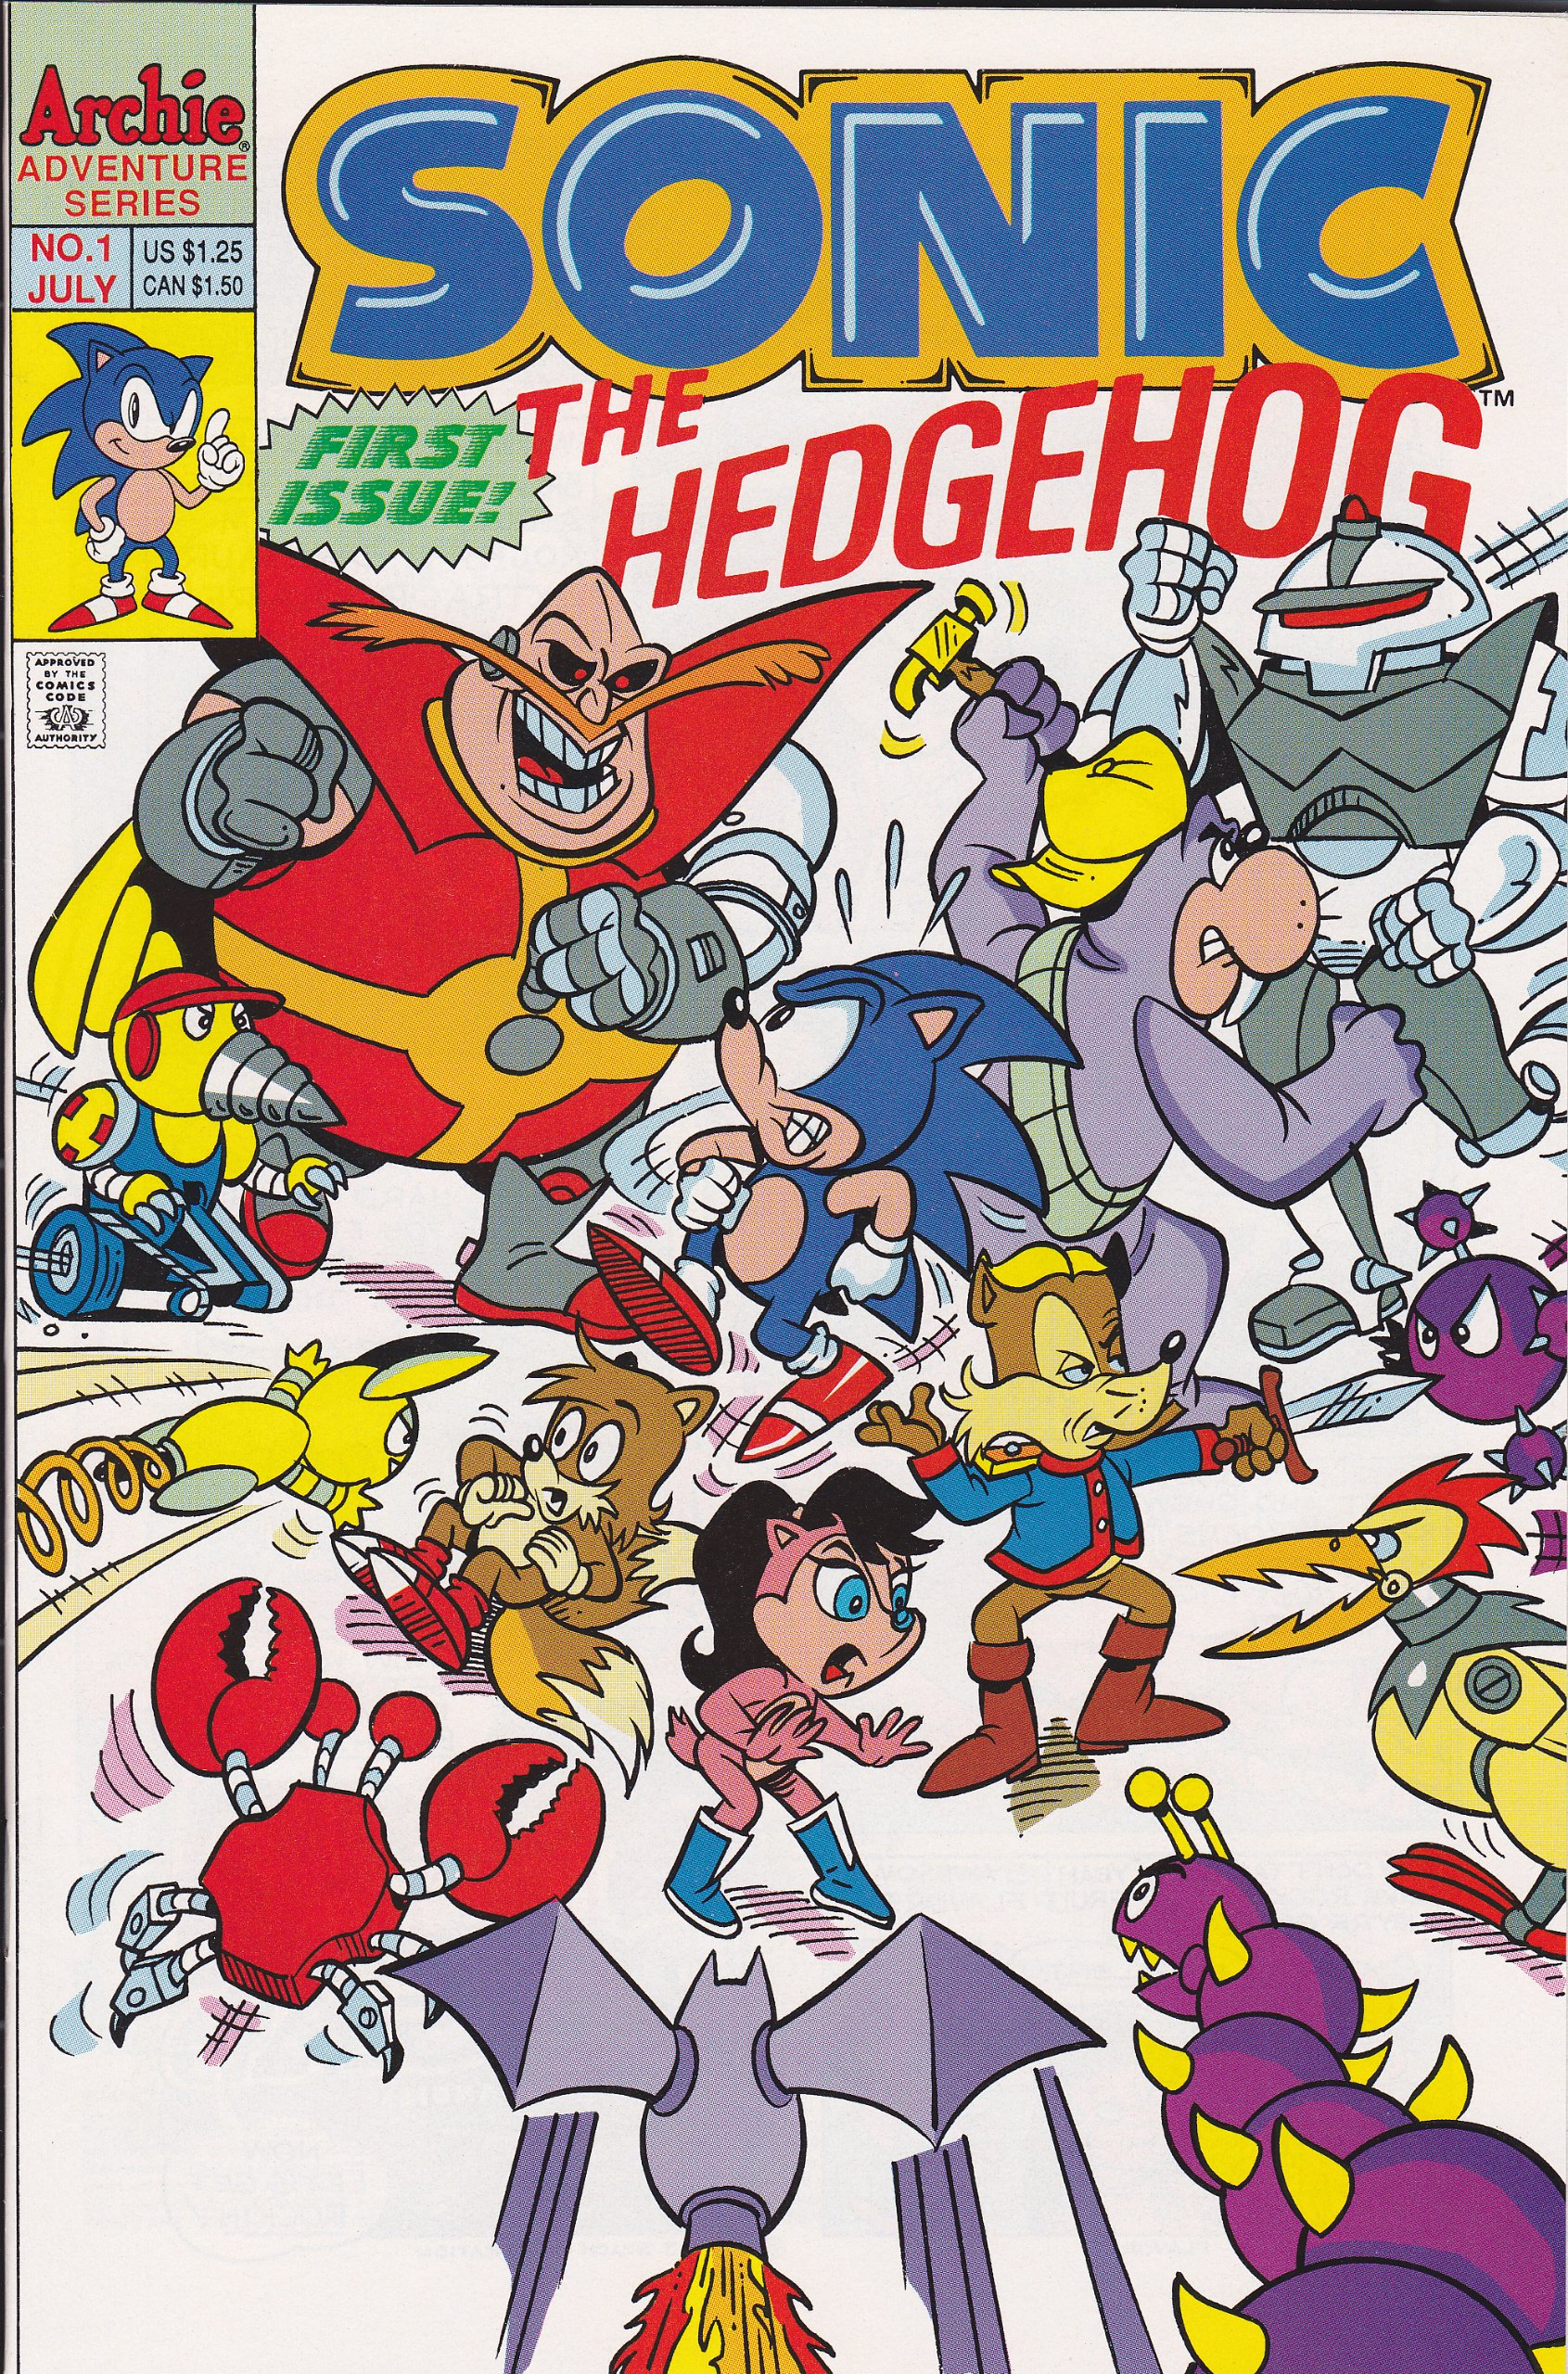 Sonic The Hedgehog 1 Archie Adventure Amazon Com Books